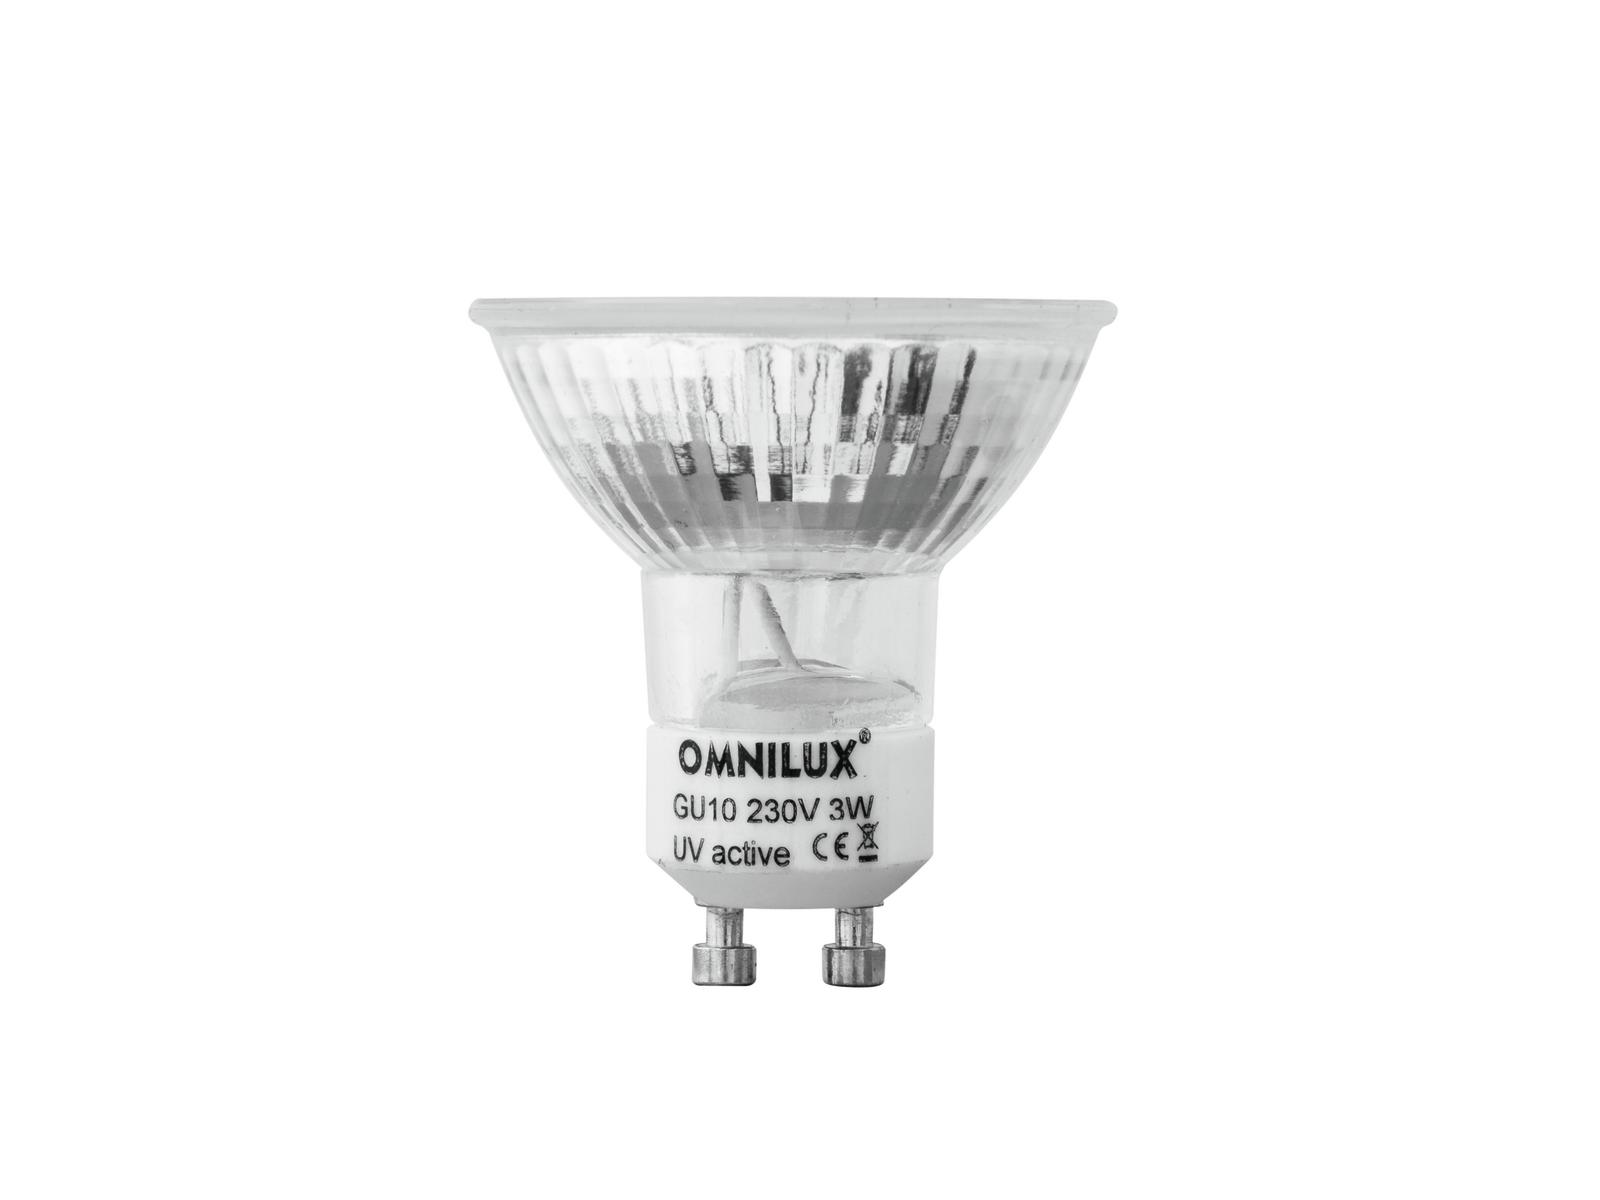 OMNILUX GU-10 230V 60 LED UV active